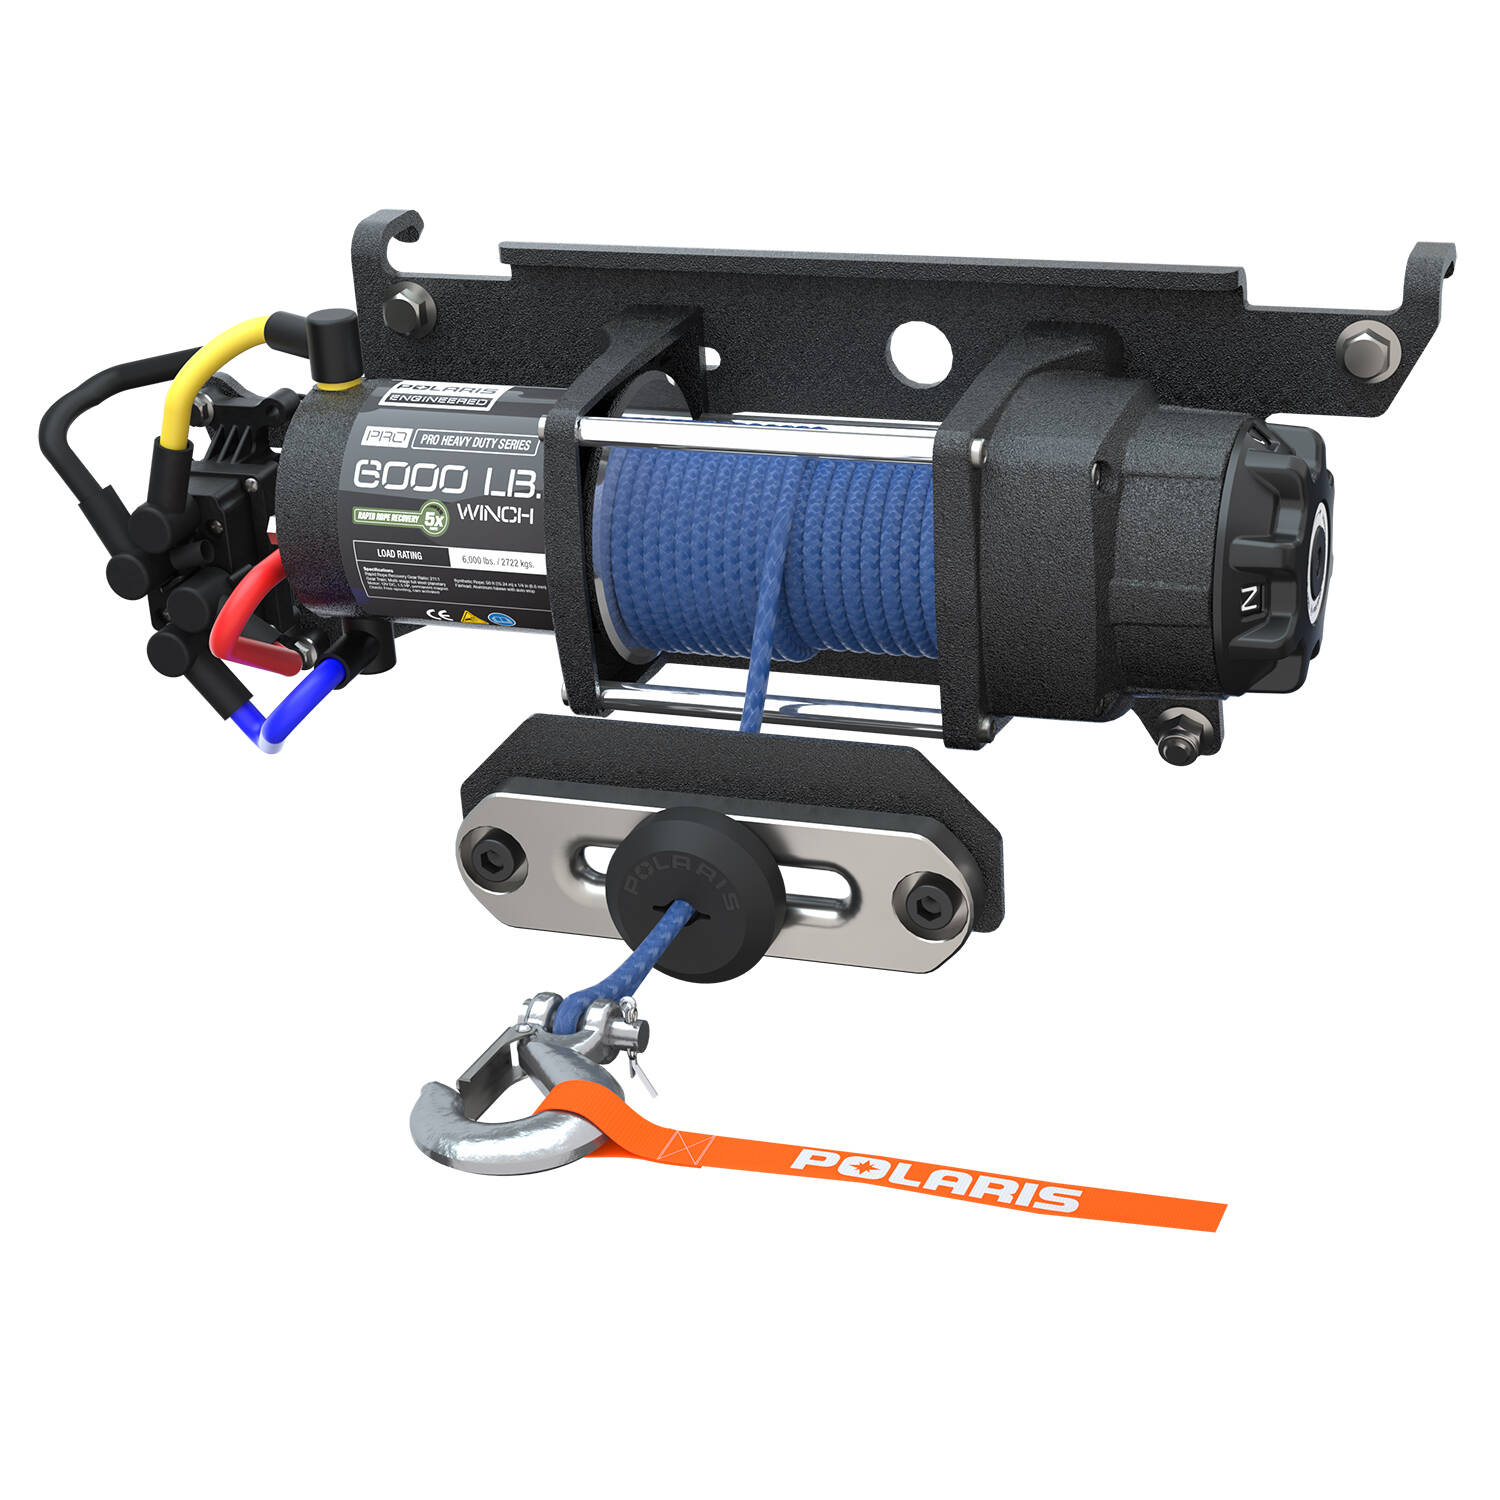 Polaris Winch Parts Diagram 6000 Hd Basic Guide Wiring Pro 6 000 Lb With Rapid Rope Recovery Rh Ranger Com Sportsman 500